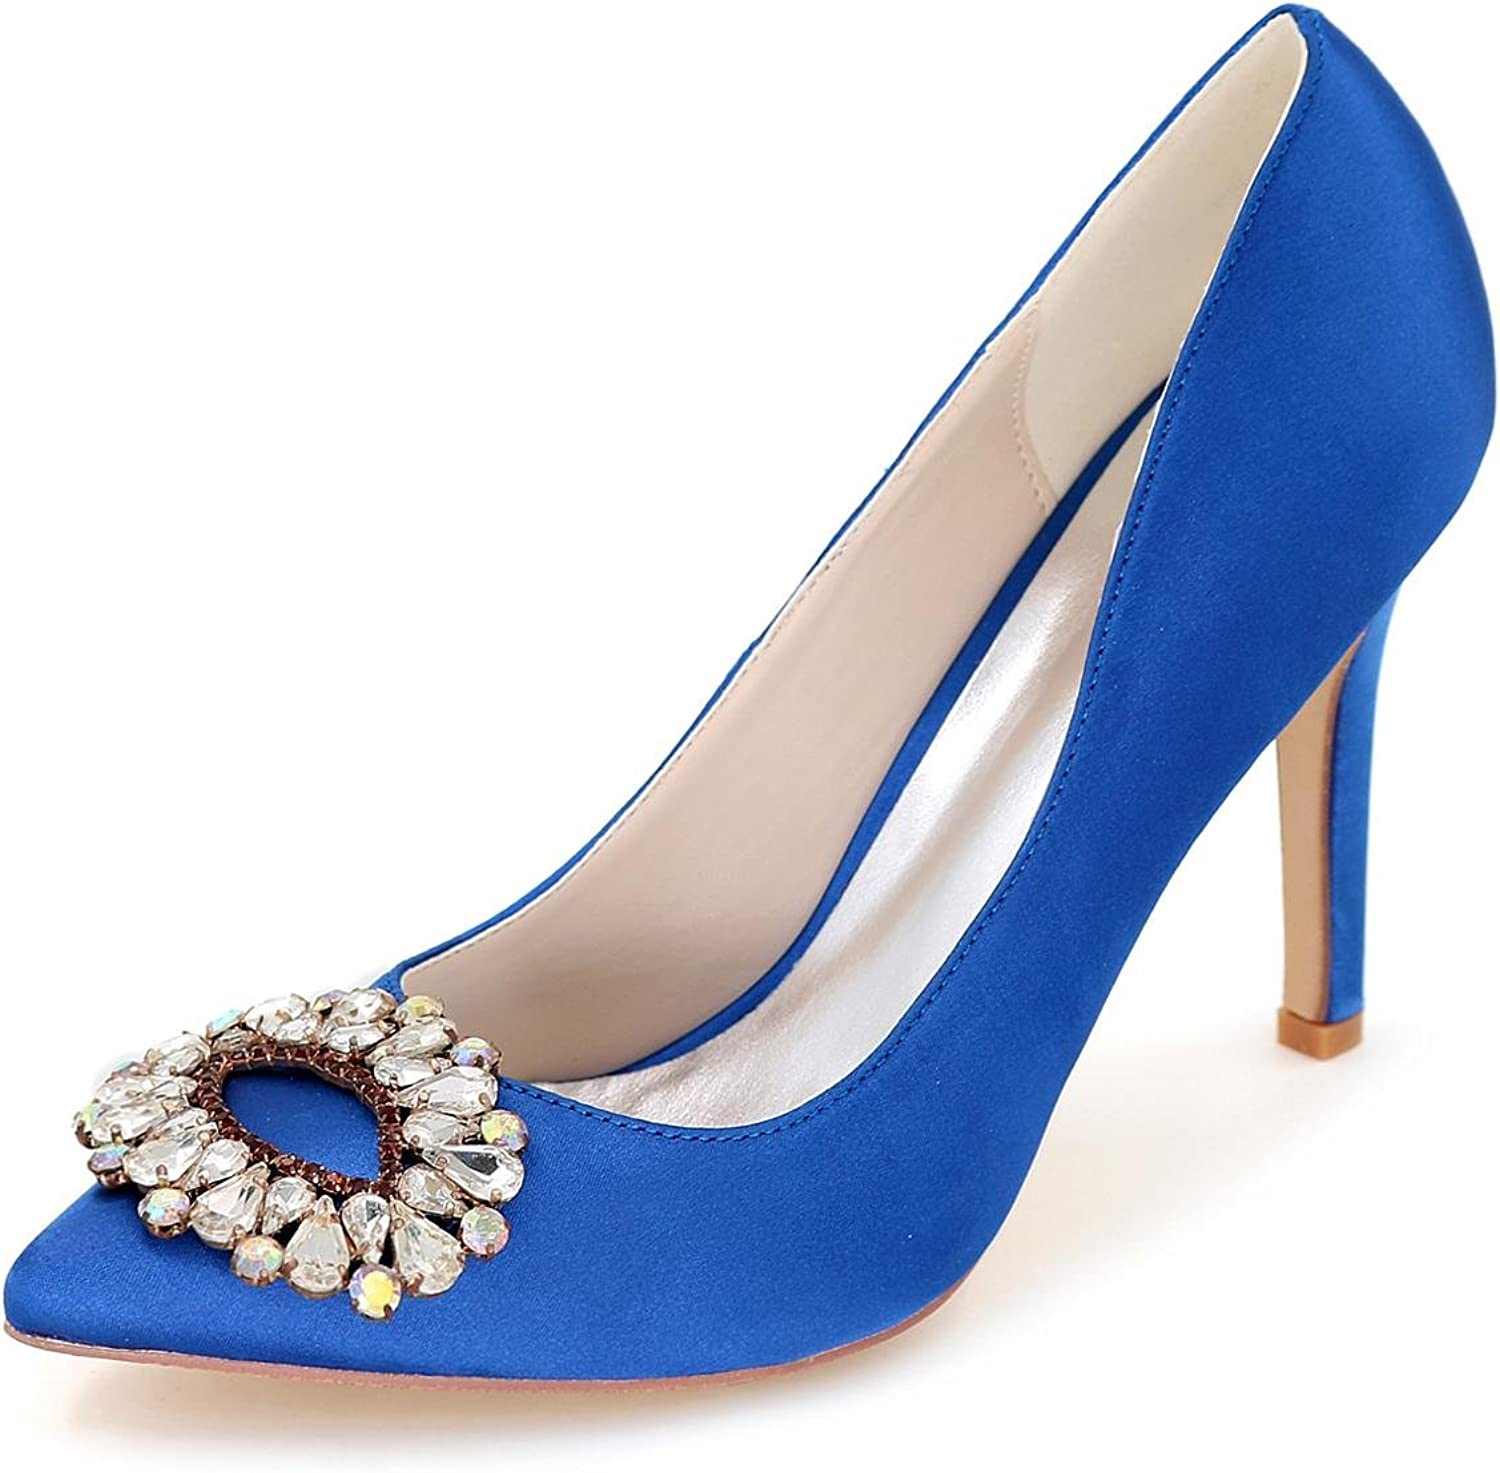 L@YC F Women's Wedding shoes Spring Summer Autumn Terrace Satin Evening Office & Professional Dress Up Leisure Party